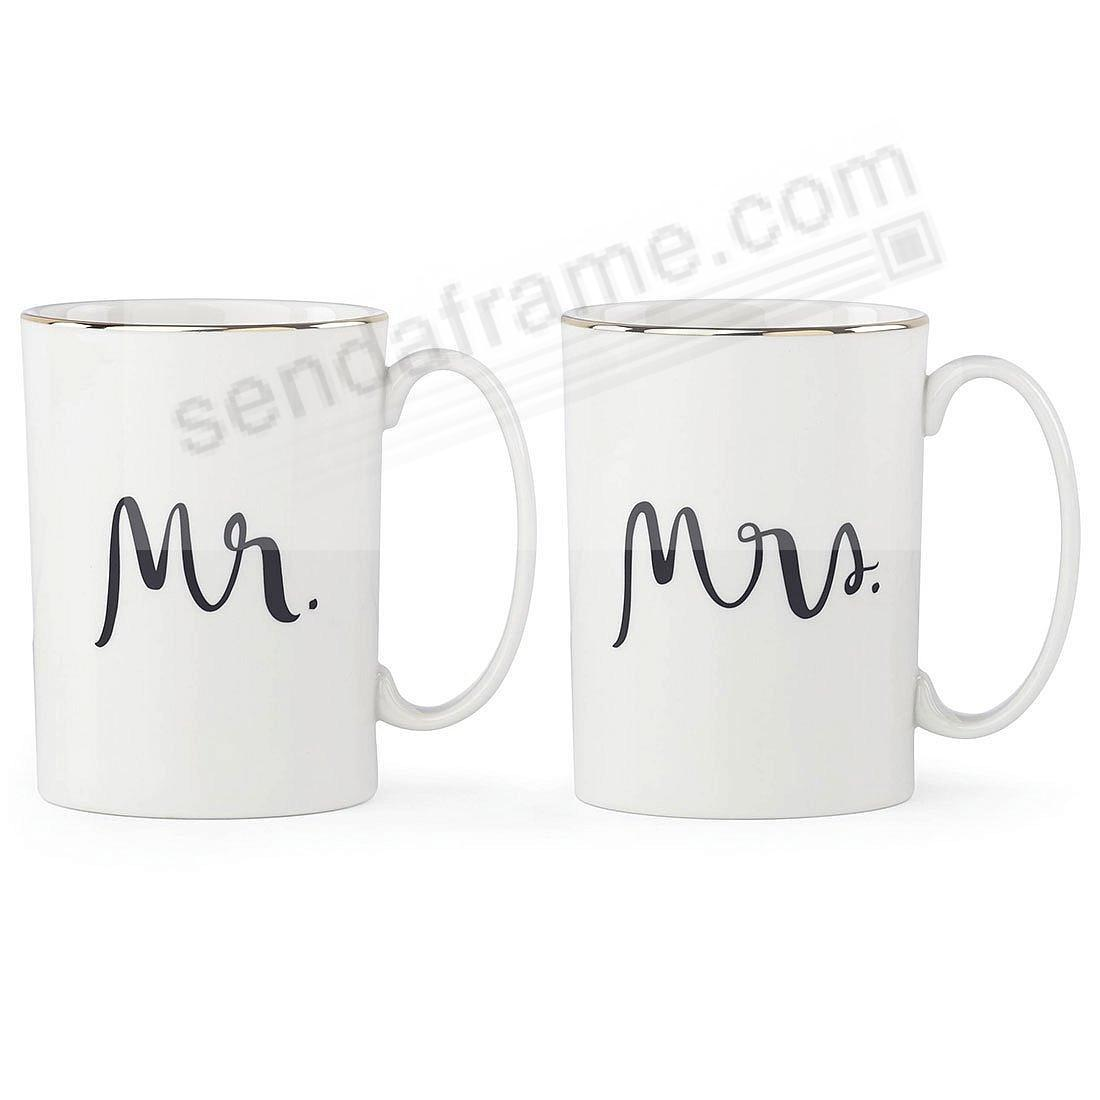 MR + MRS MUG SET BRIDAL PARTY by kate spade new york®